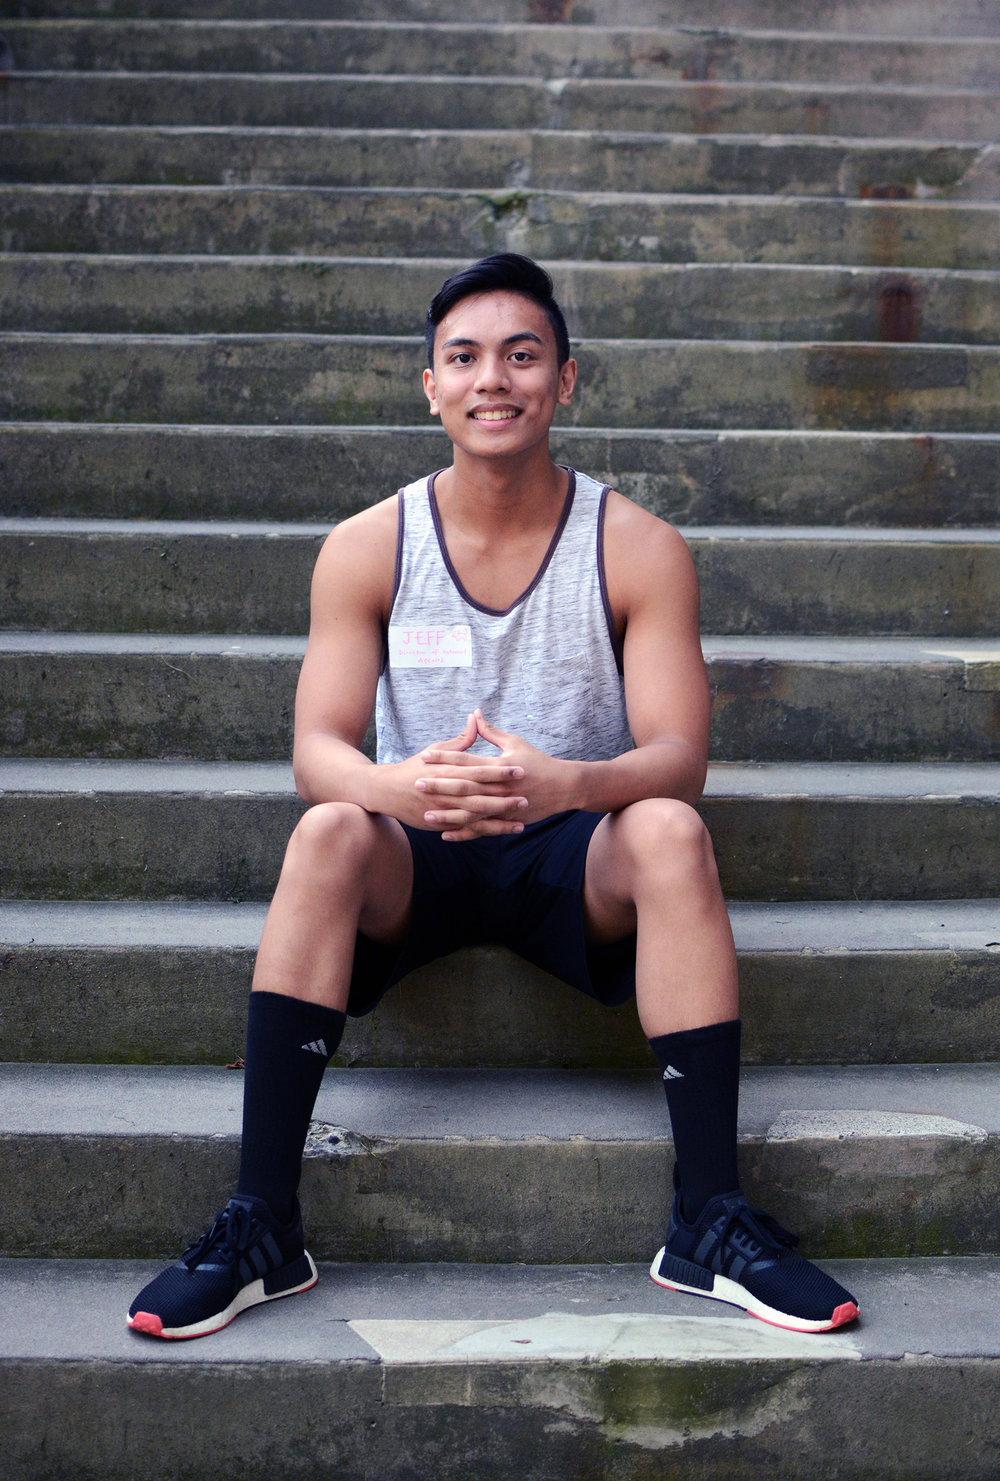 Jefferson Poserio   Director of Internal Affairs    Year : Senior, 2019  Major : Human Biology, Health, and Society  Other Involvements : Cornell Filipino Association, Pi Delta Psi, Sinigang Hip Hop, CholKids Research Lab  As Director of Internal Affairs, Jeff is excited to bring the A3 community together and provide the necessary resources to see every organization succeed. Jeff strives for greater unity within the different groups through more cross-cultural programming and events. During his down time he likes to keep up with current events, play volleyball, or chill with friends.